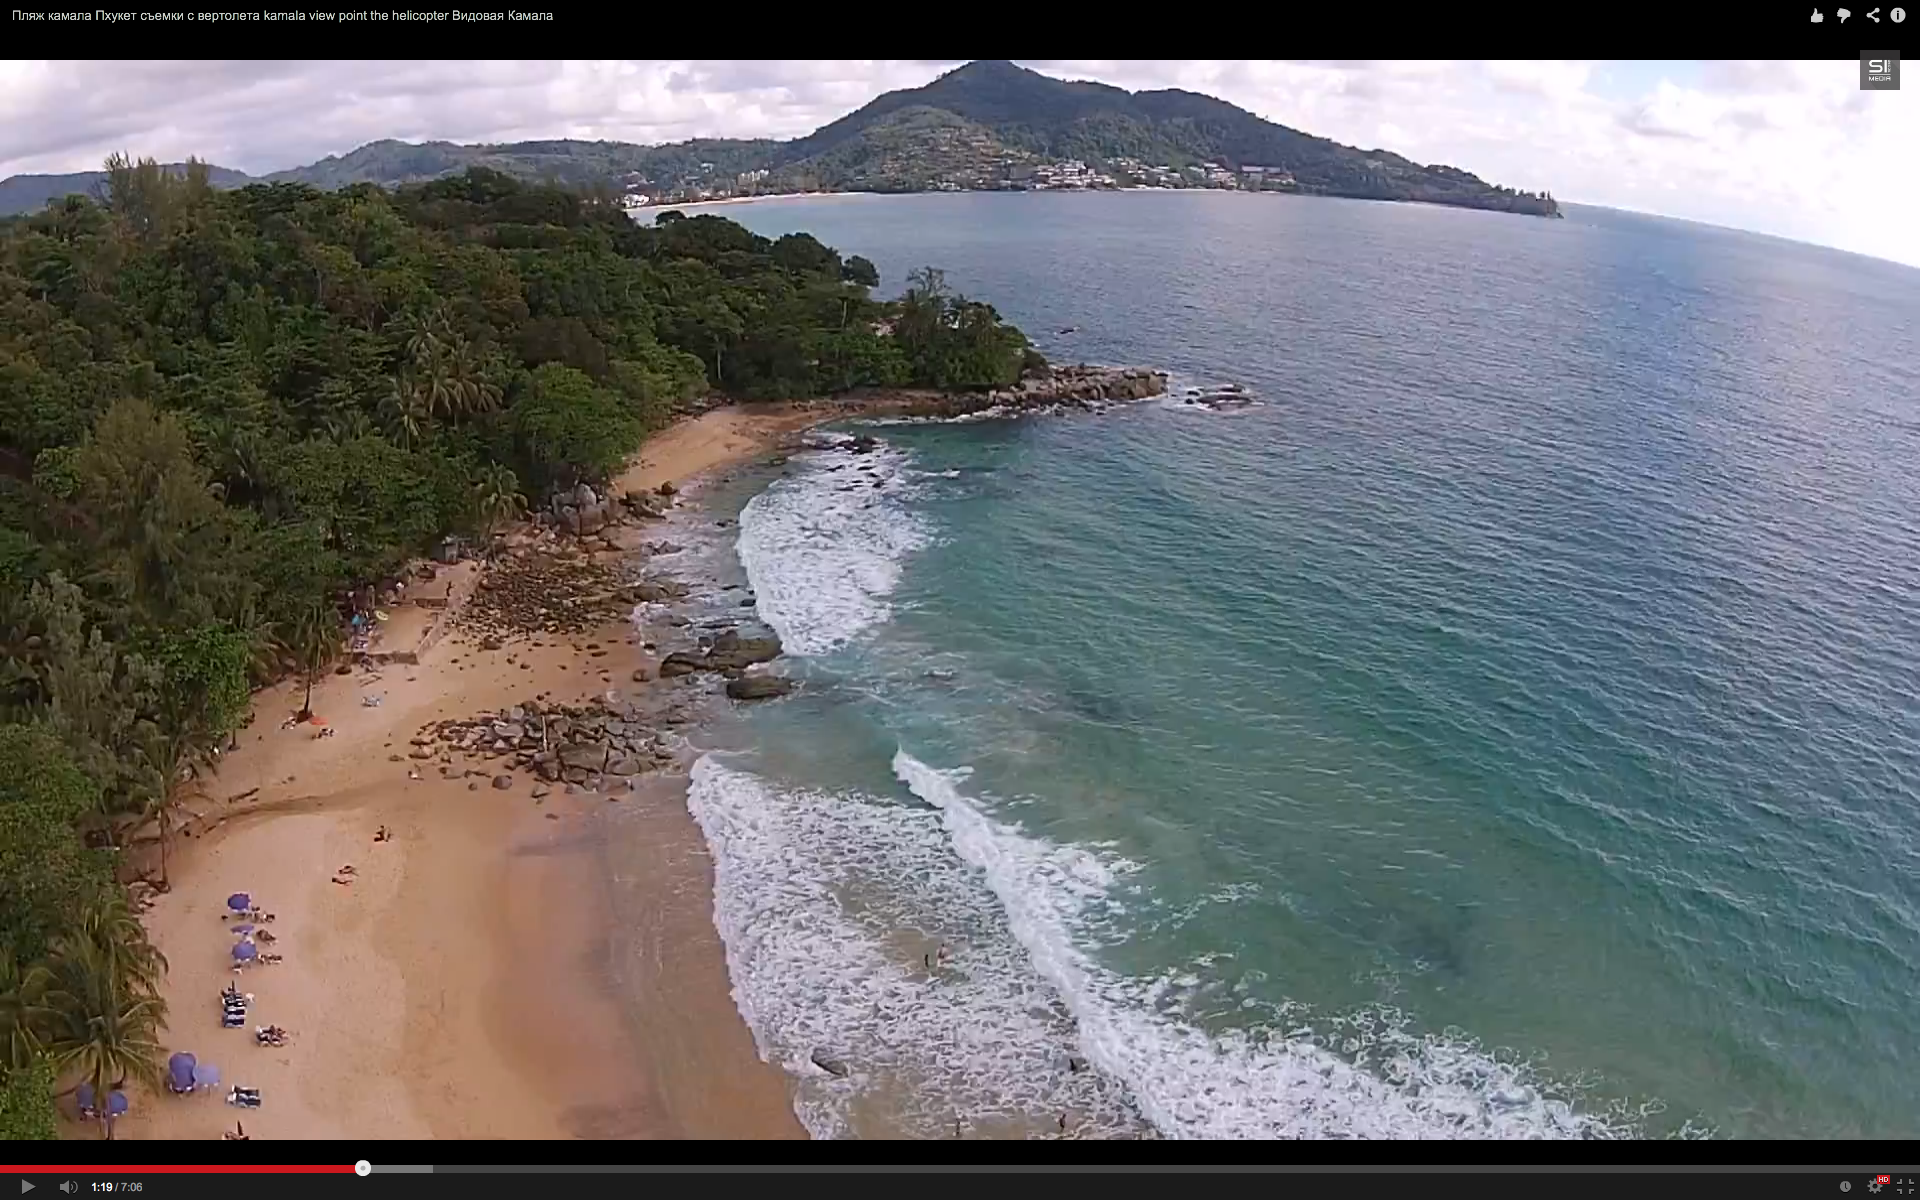 Species area of ​​Kamala. Videos Kamala Phuket